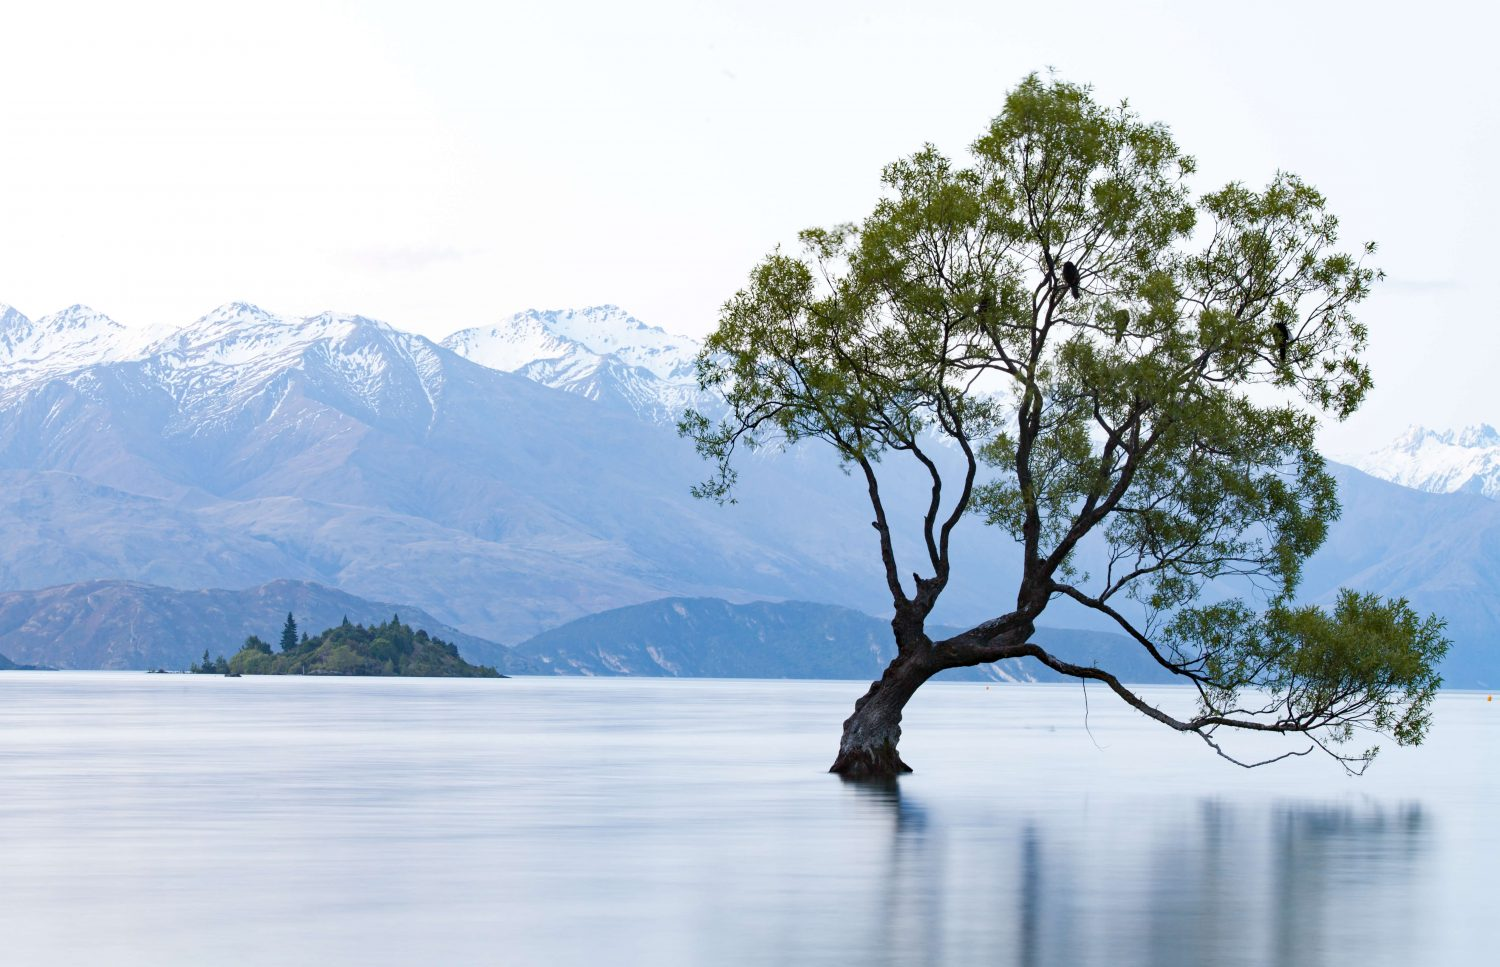 New Zealand Wanaka Region Glendhu Bay - Eco Green Slow Sustainable Travel - Nowhere & Everywhere